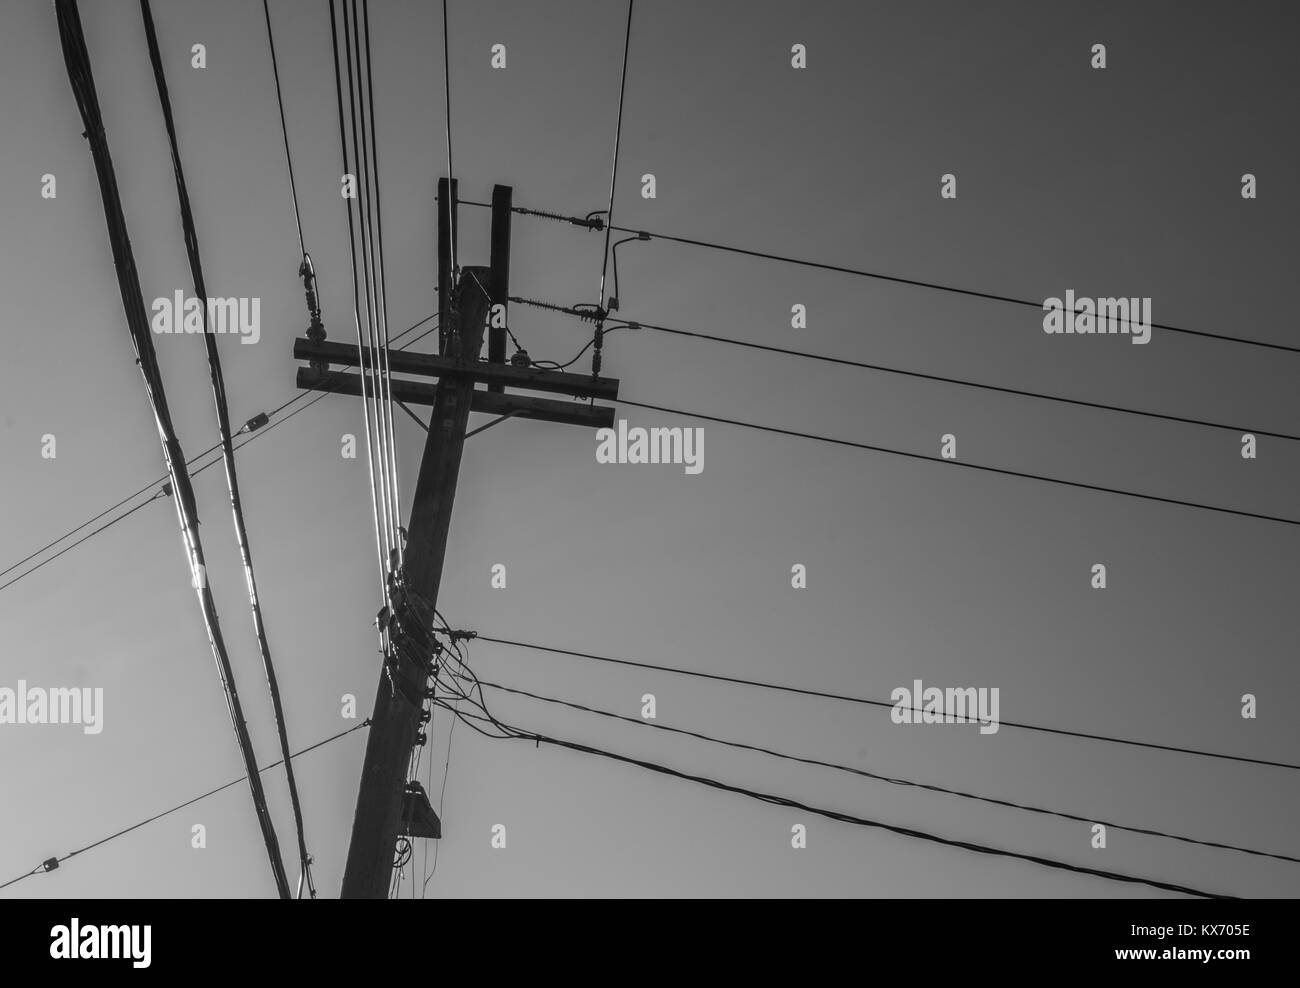 Electric Pole Black and White Stock Photos & Images - Alamy